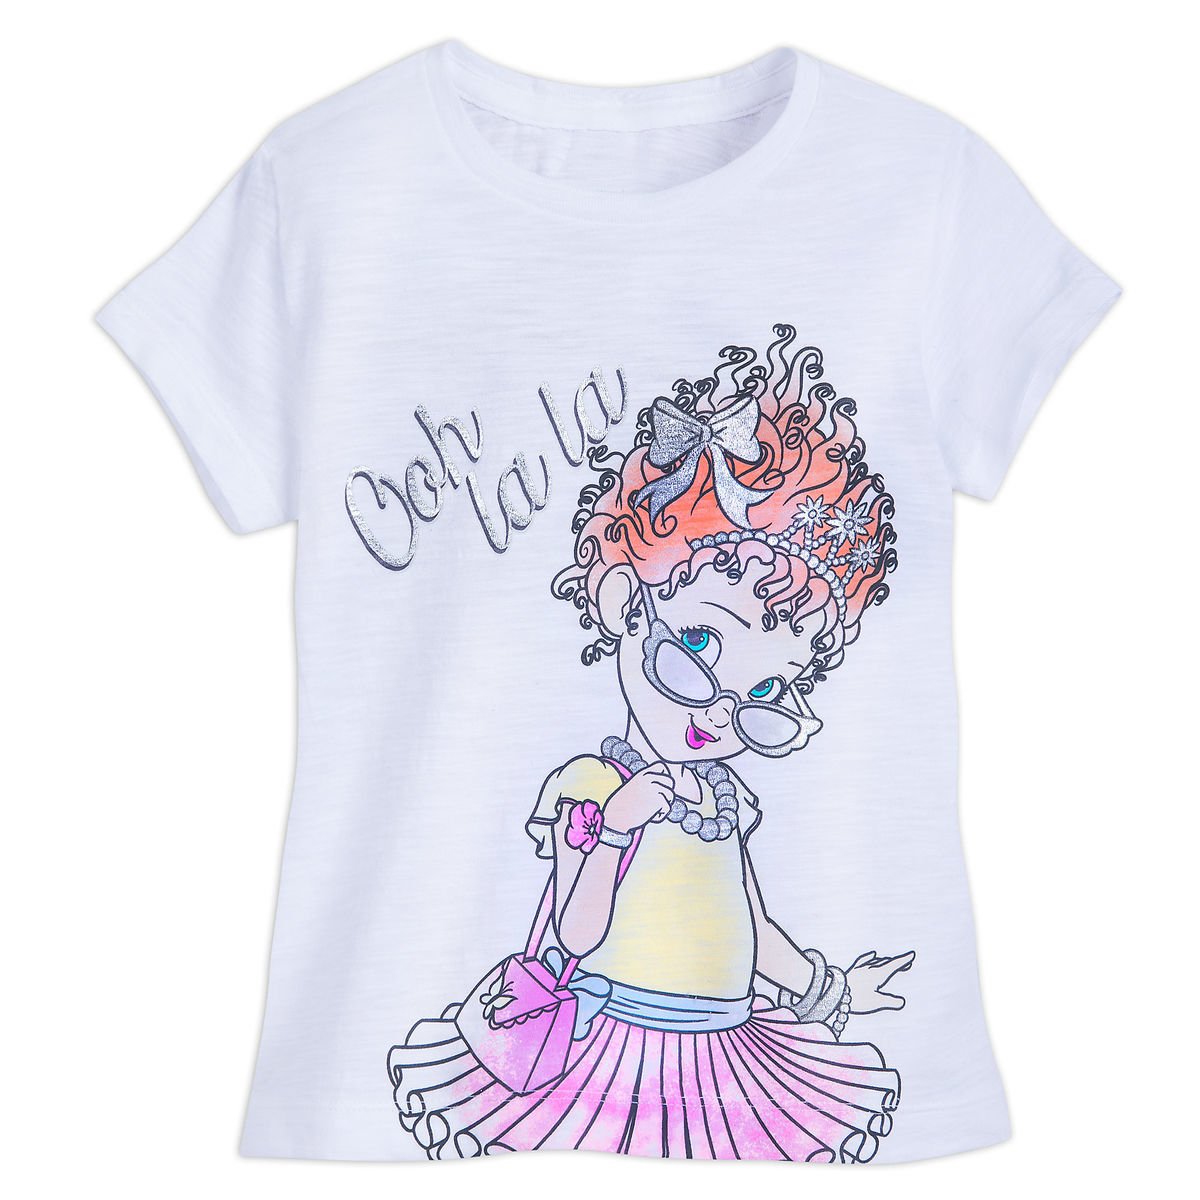 cc216a81f29 Product Image of Fancy Nancy T-Shirt for Girls   1